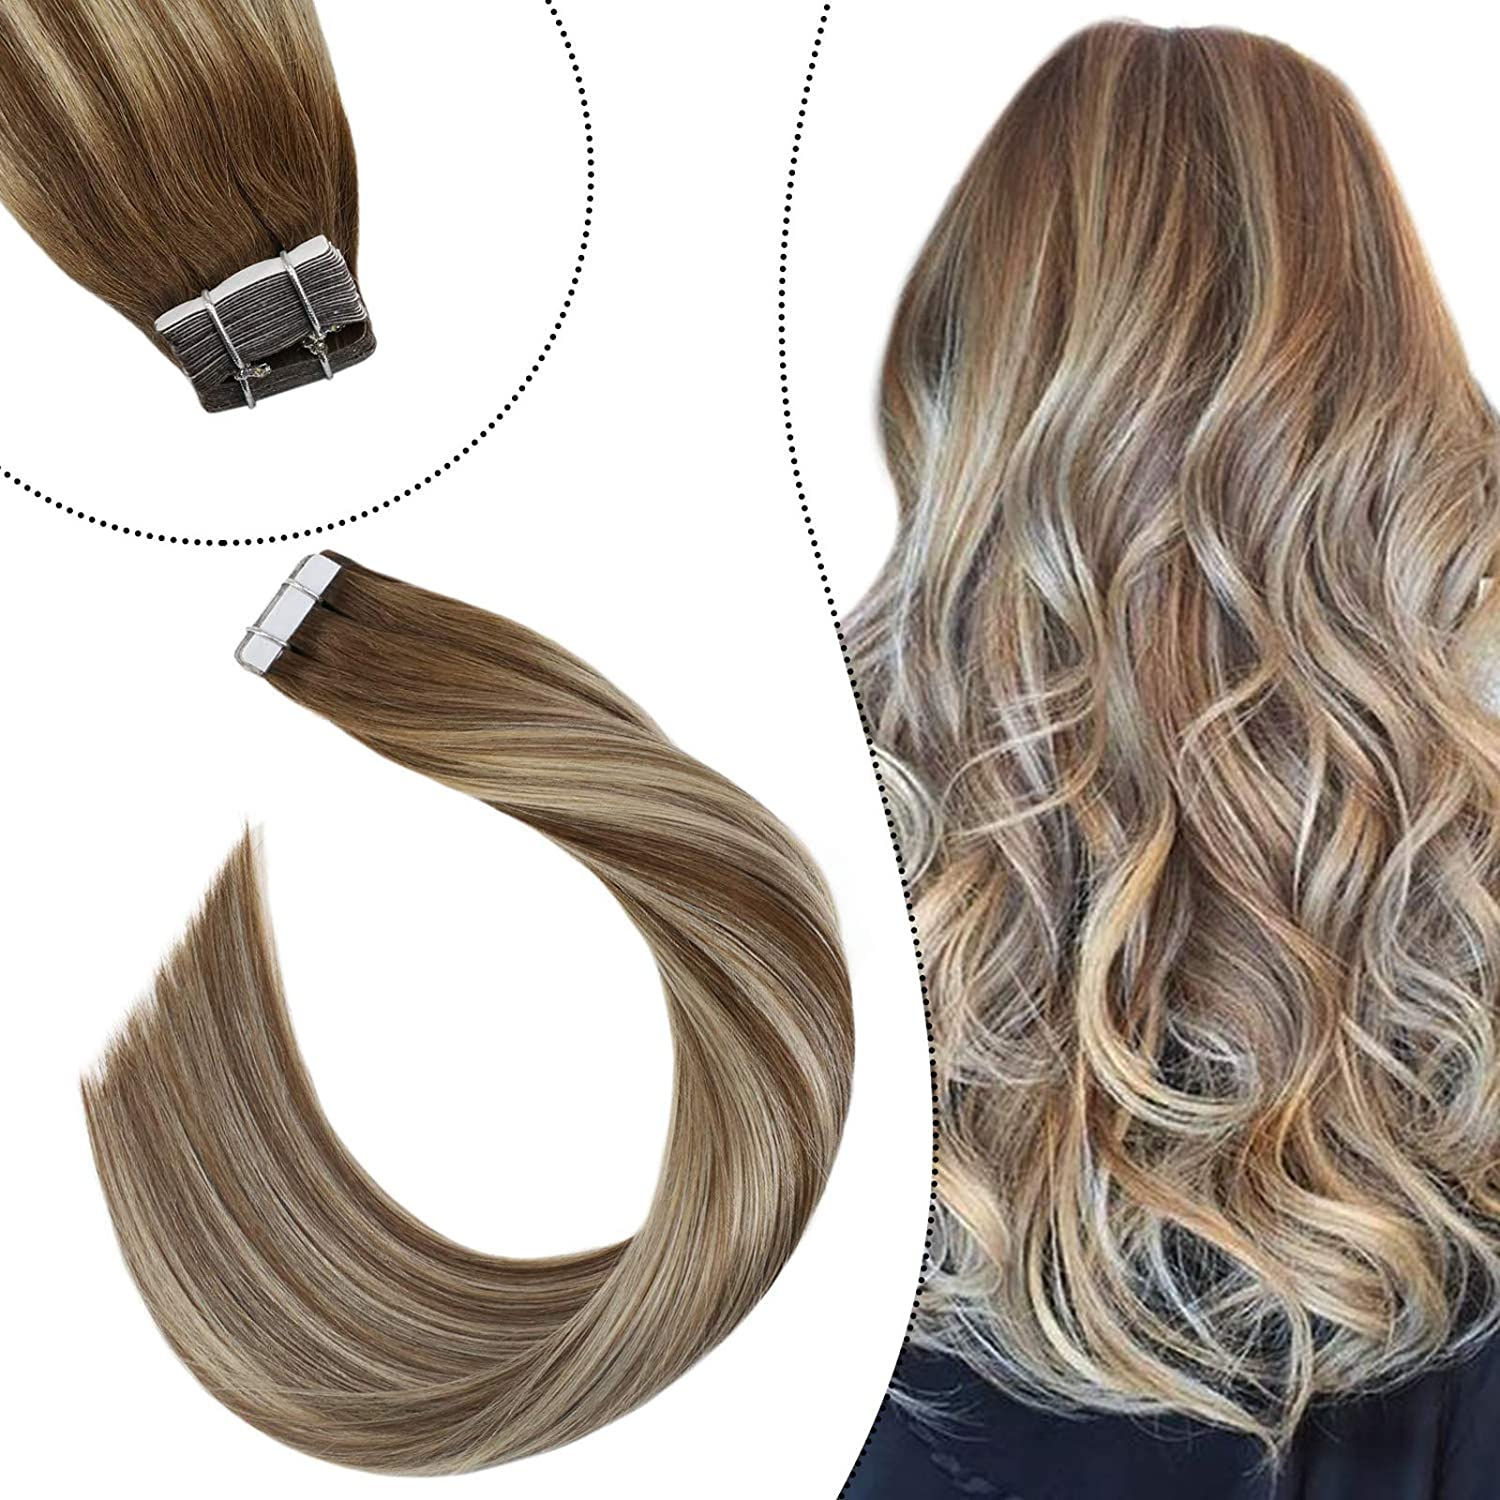 Ugeat 24 Pulgadas Tape in Extensiones Cabello Natural Brasileno #9A con #60 Blonde Ombre Skin Weft Remy Cabello Humano Extensiones 20pcs/50g